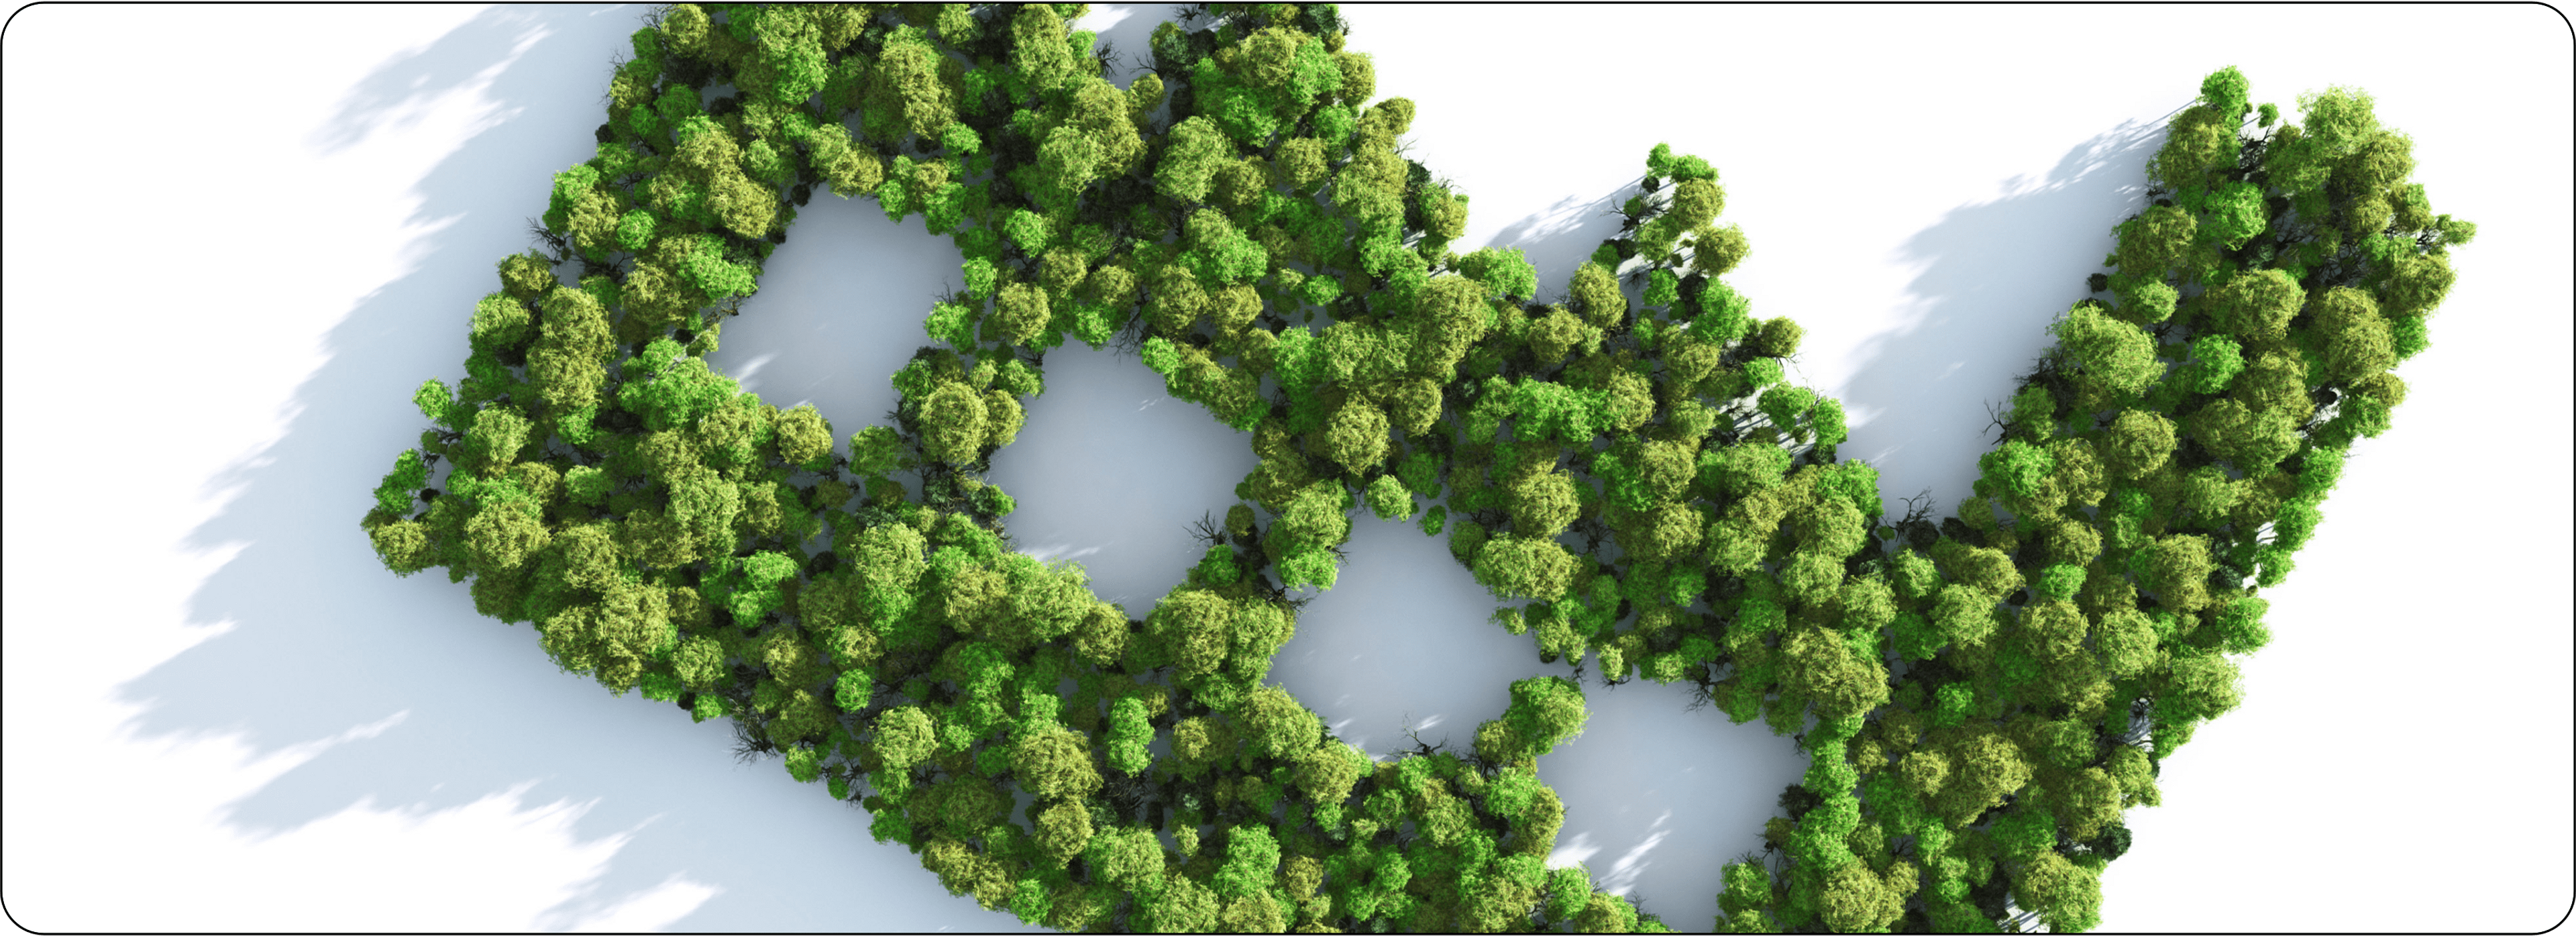 Bird's eye view of monoculture forest